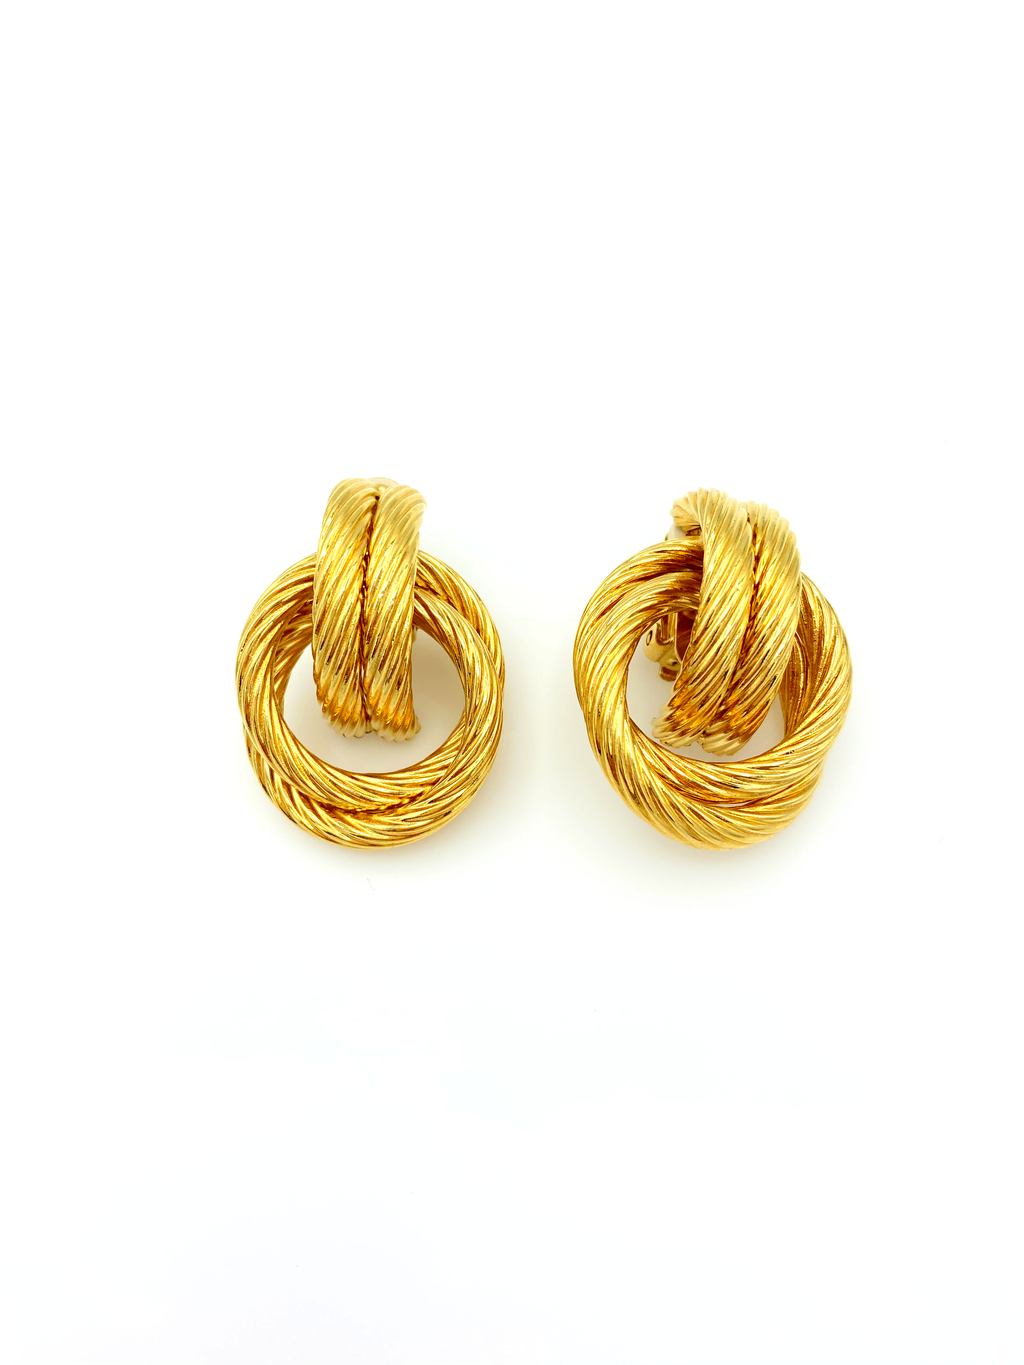 Givenchy Gold Twisted Knot Vintage Earrings-Sustainable Fashion with Vintage Style-Trending Designer Fashion-24 Wishes